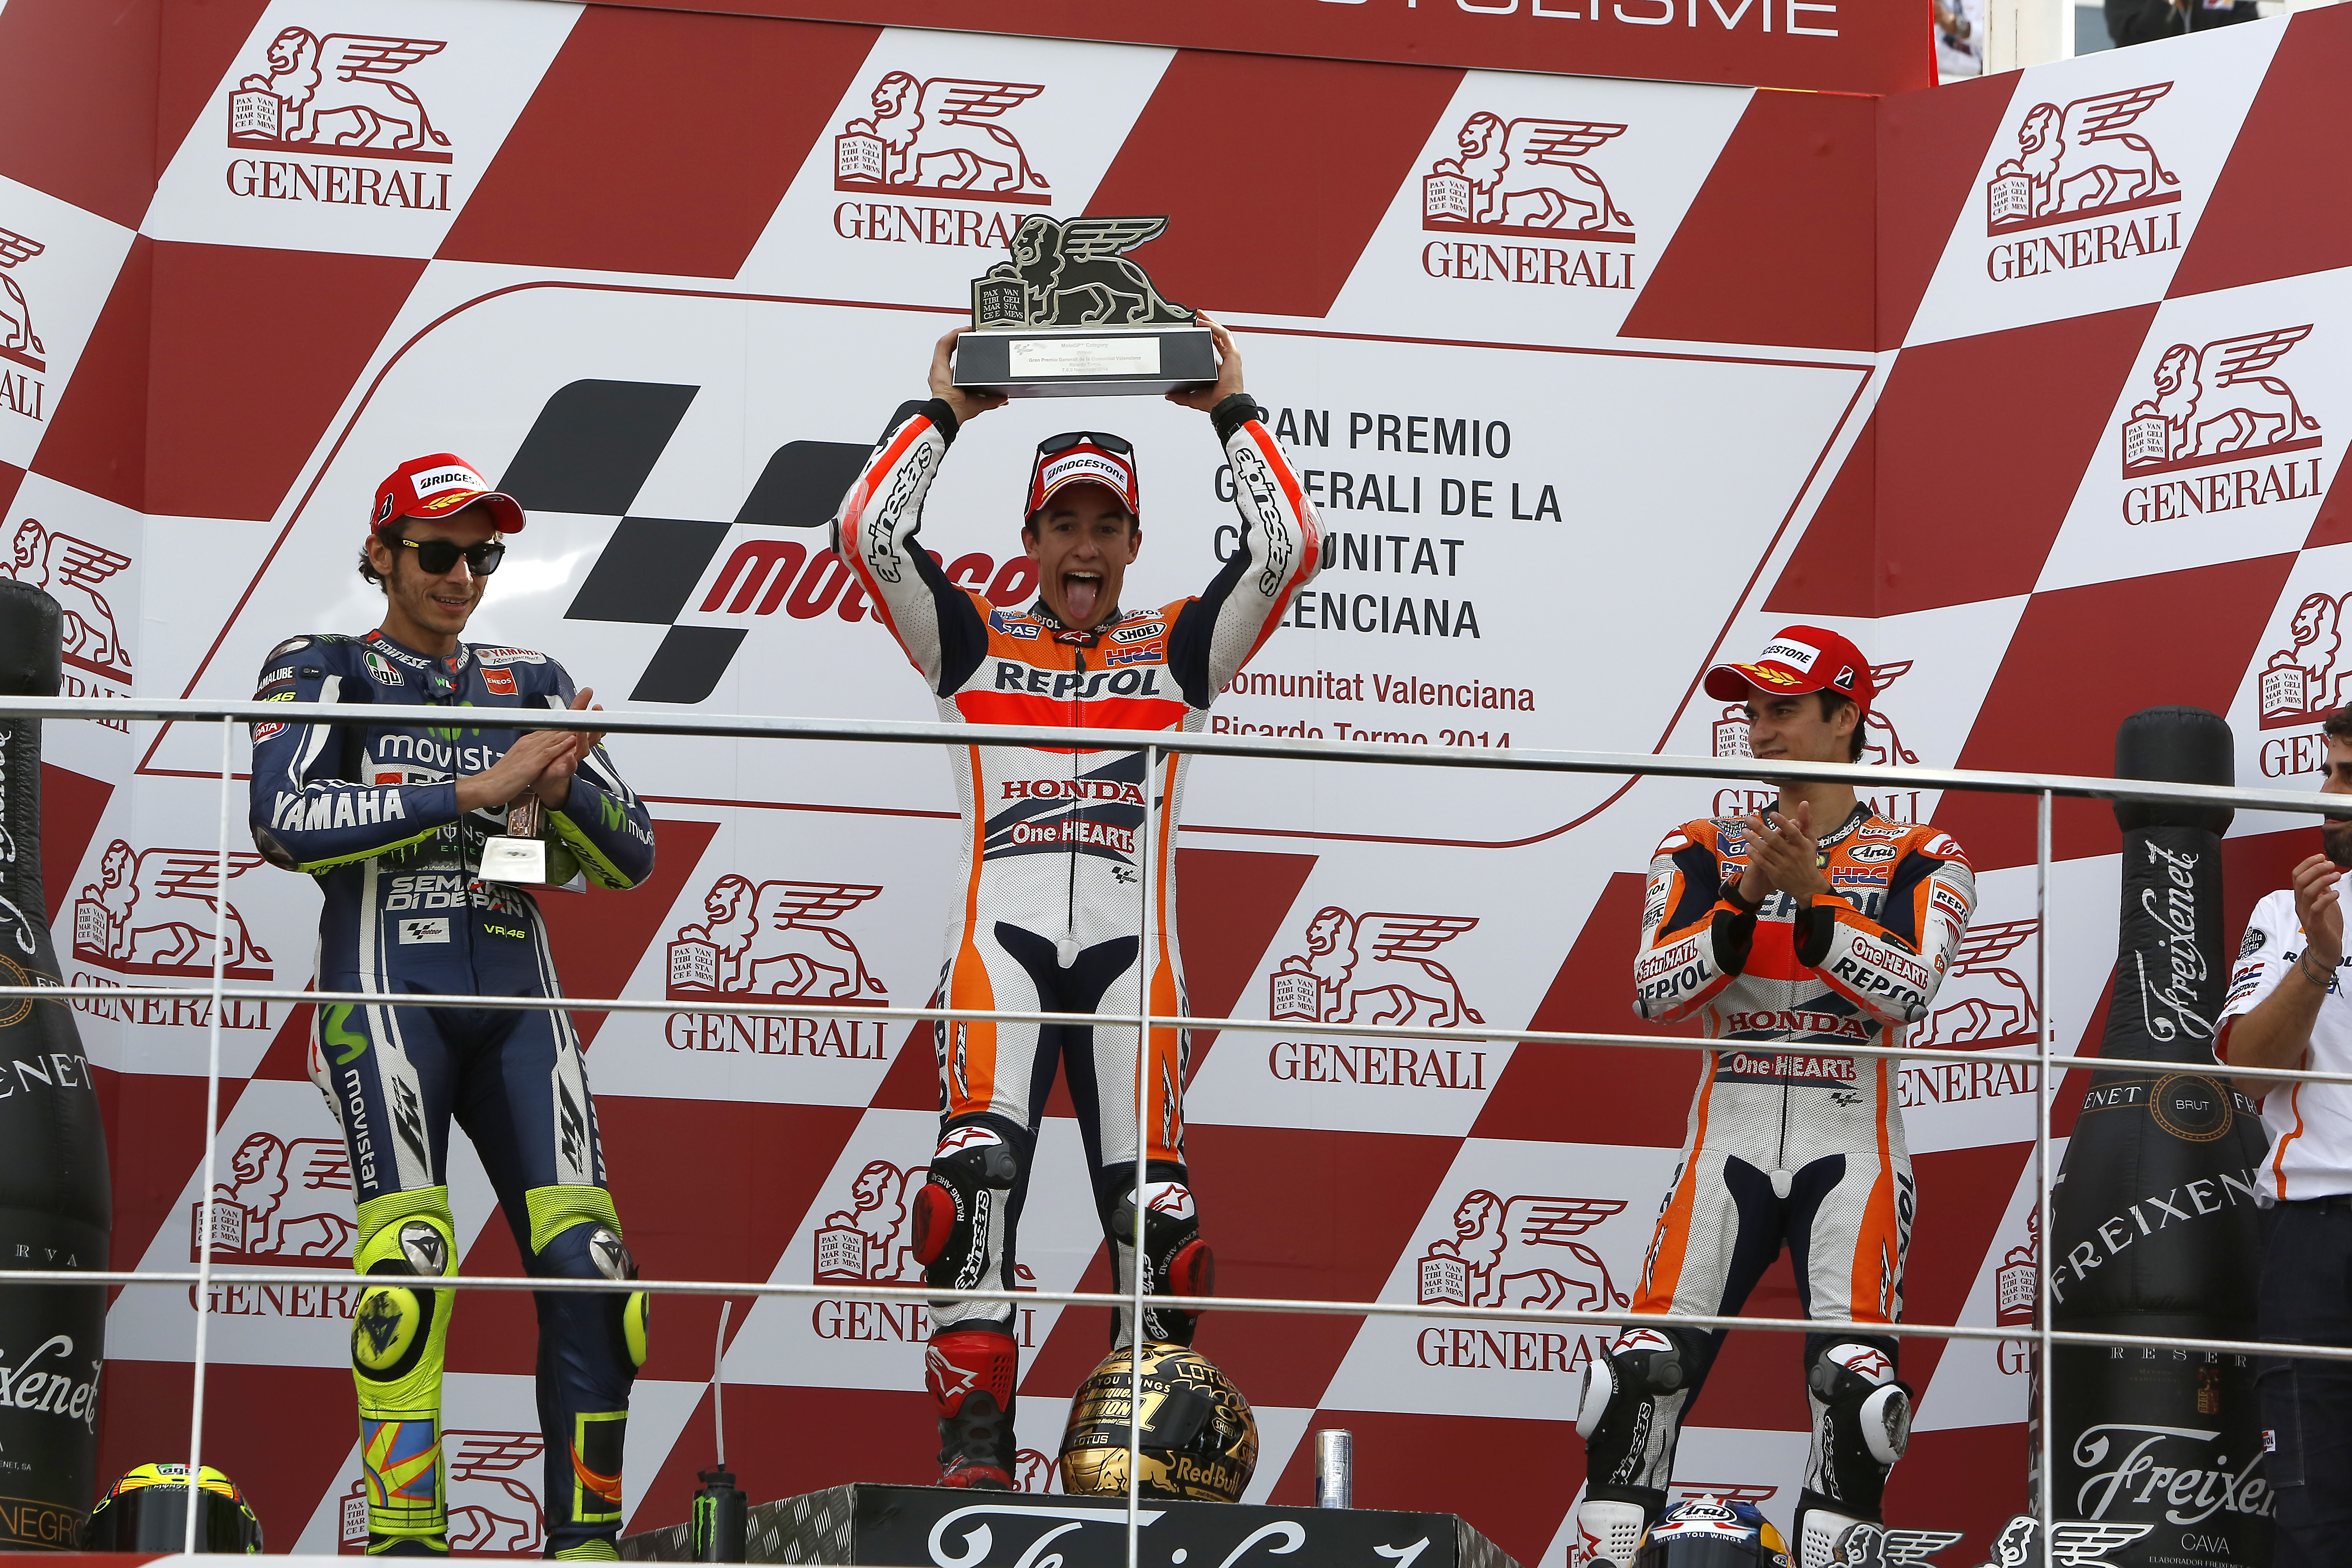 MotoGP 2014: Championship standings after Valencia